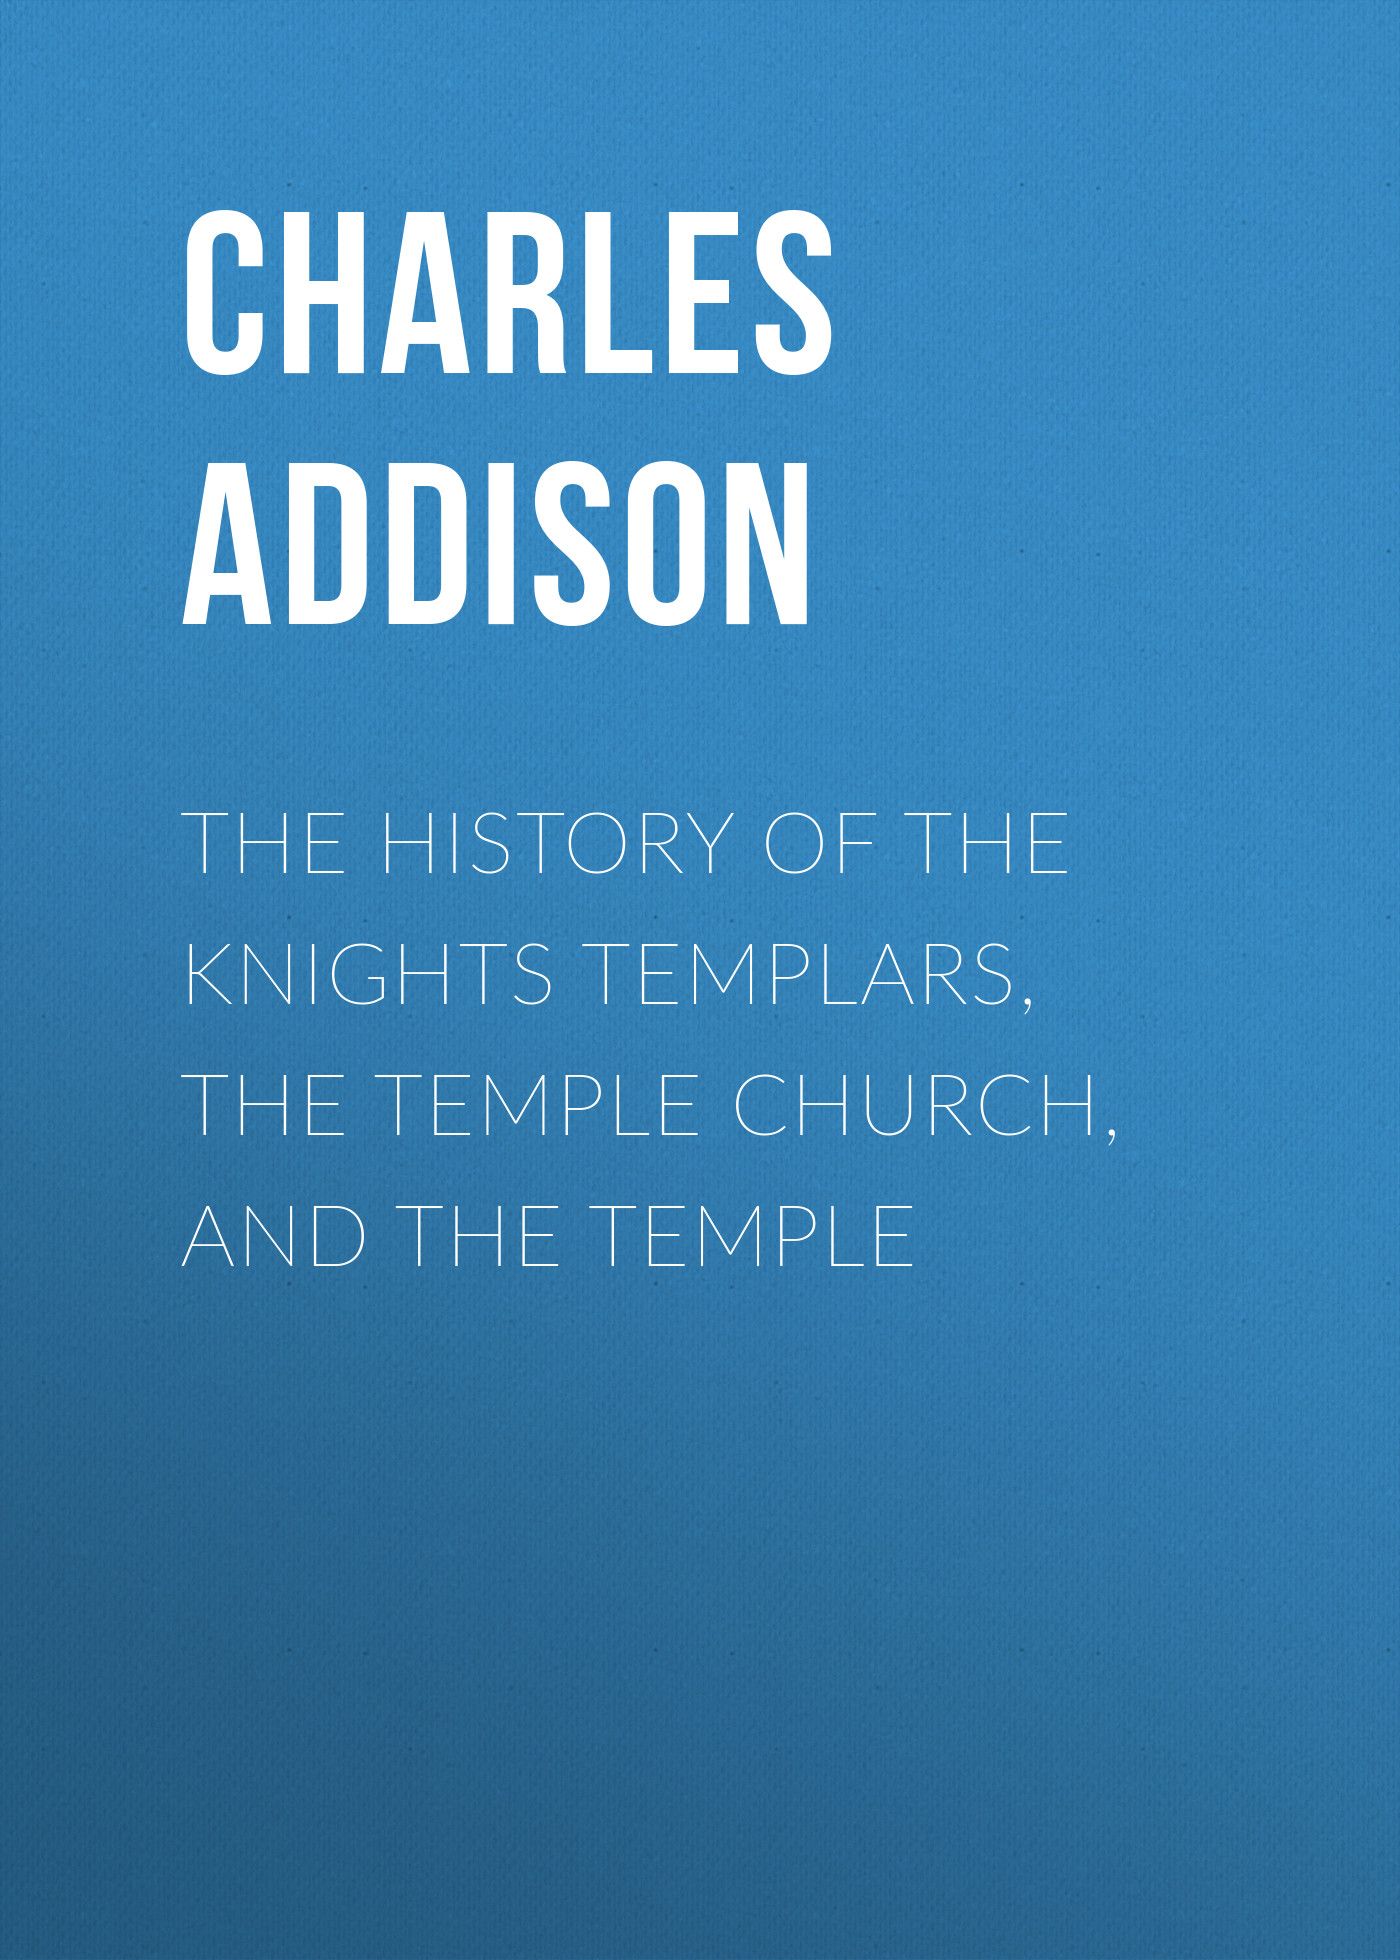 Addison Charles Greenstreet The History of the Knights Templars, the Temple Church, and the Temple a hedges the temple of solomon op 78